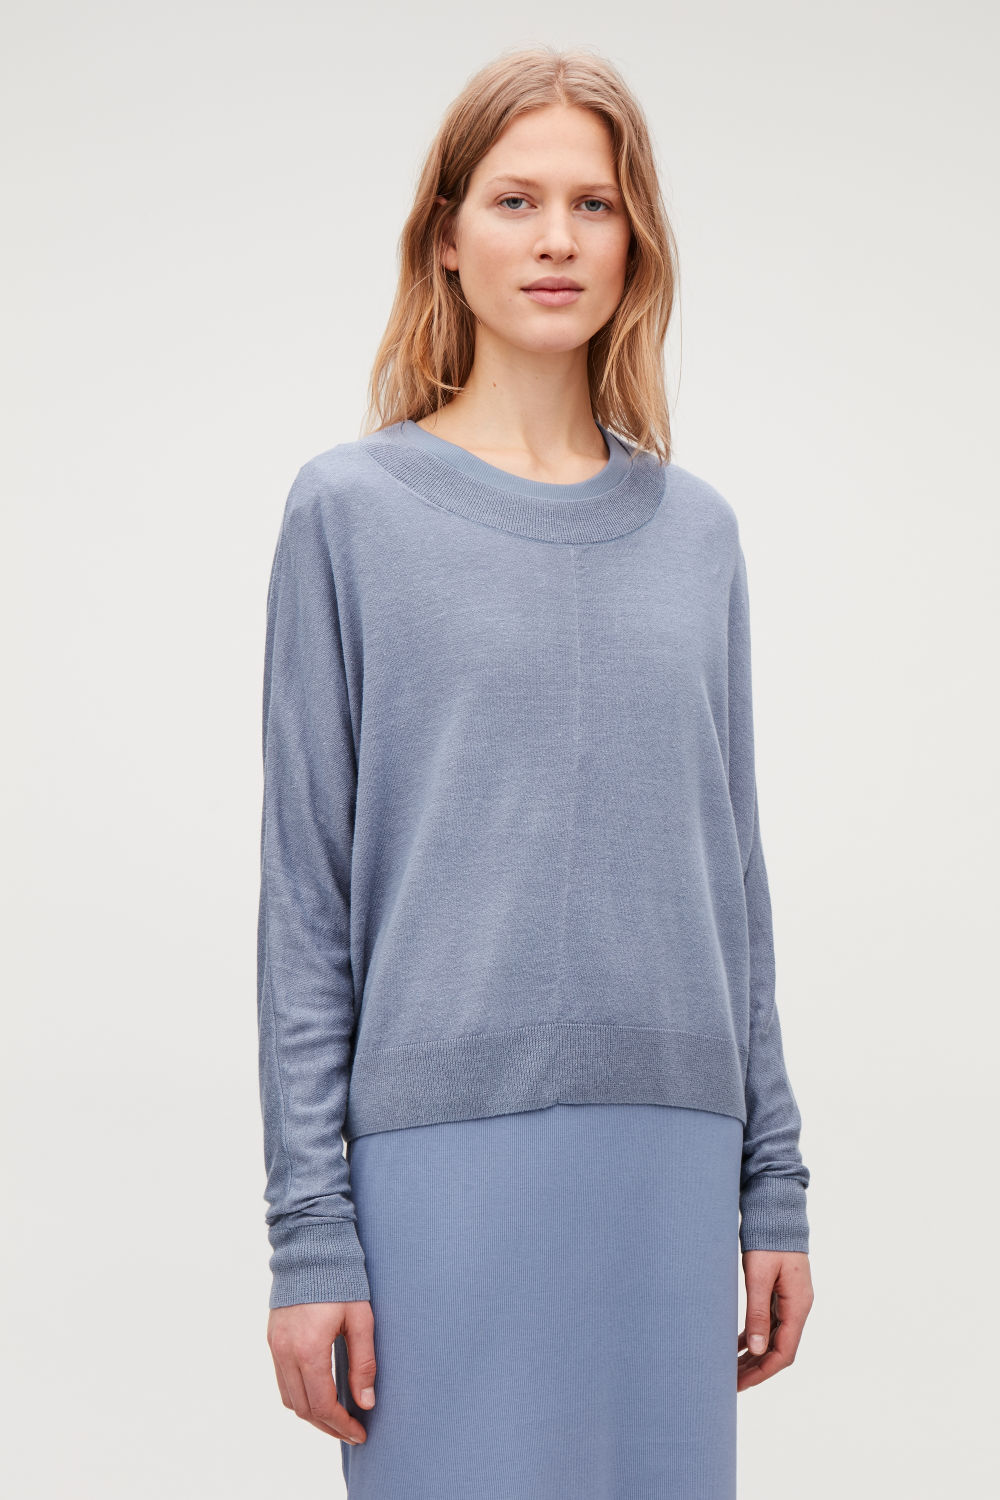 RELAXED LINEN-BLEND KNIT TOP